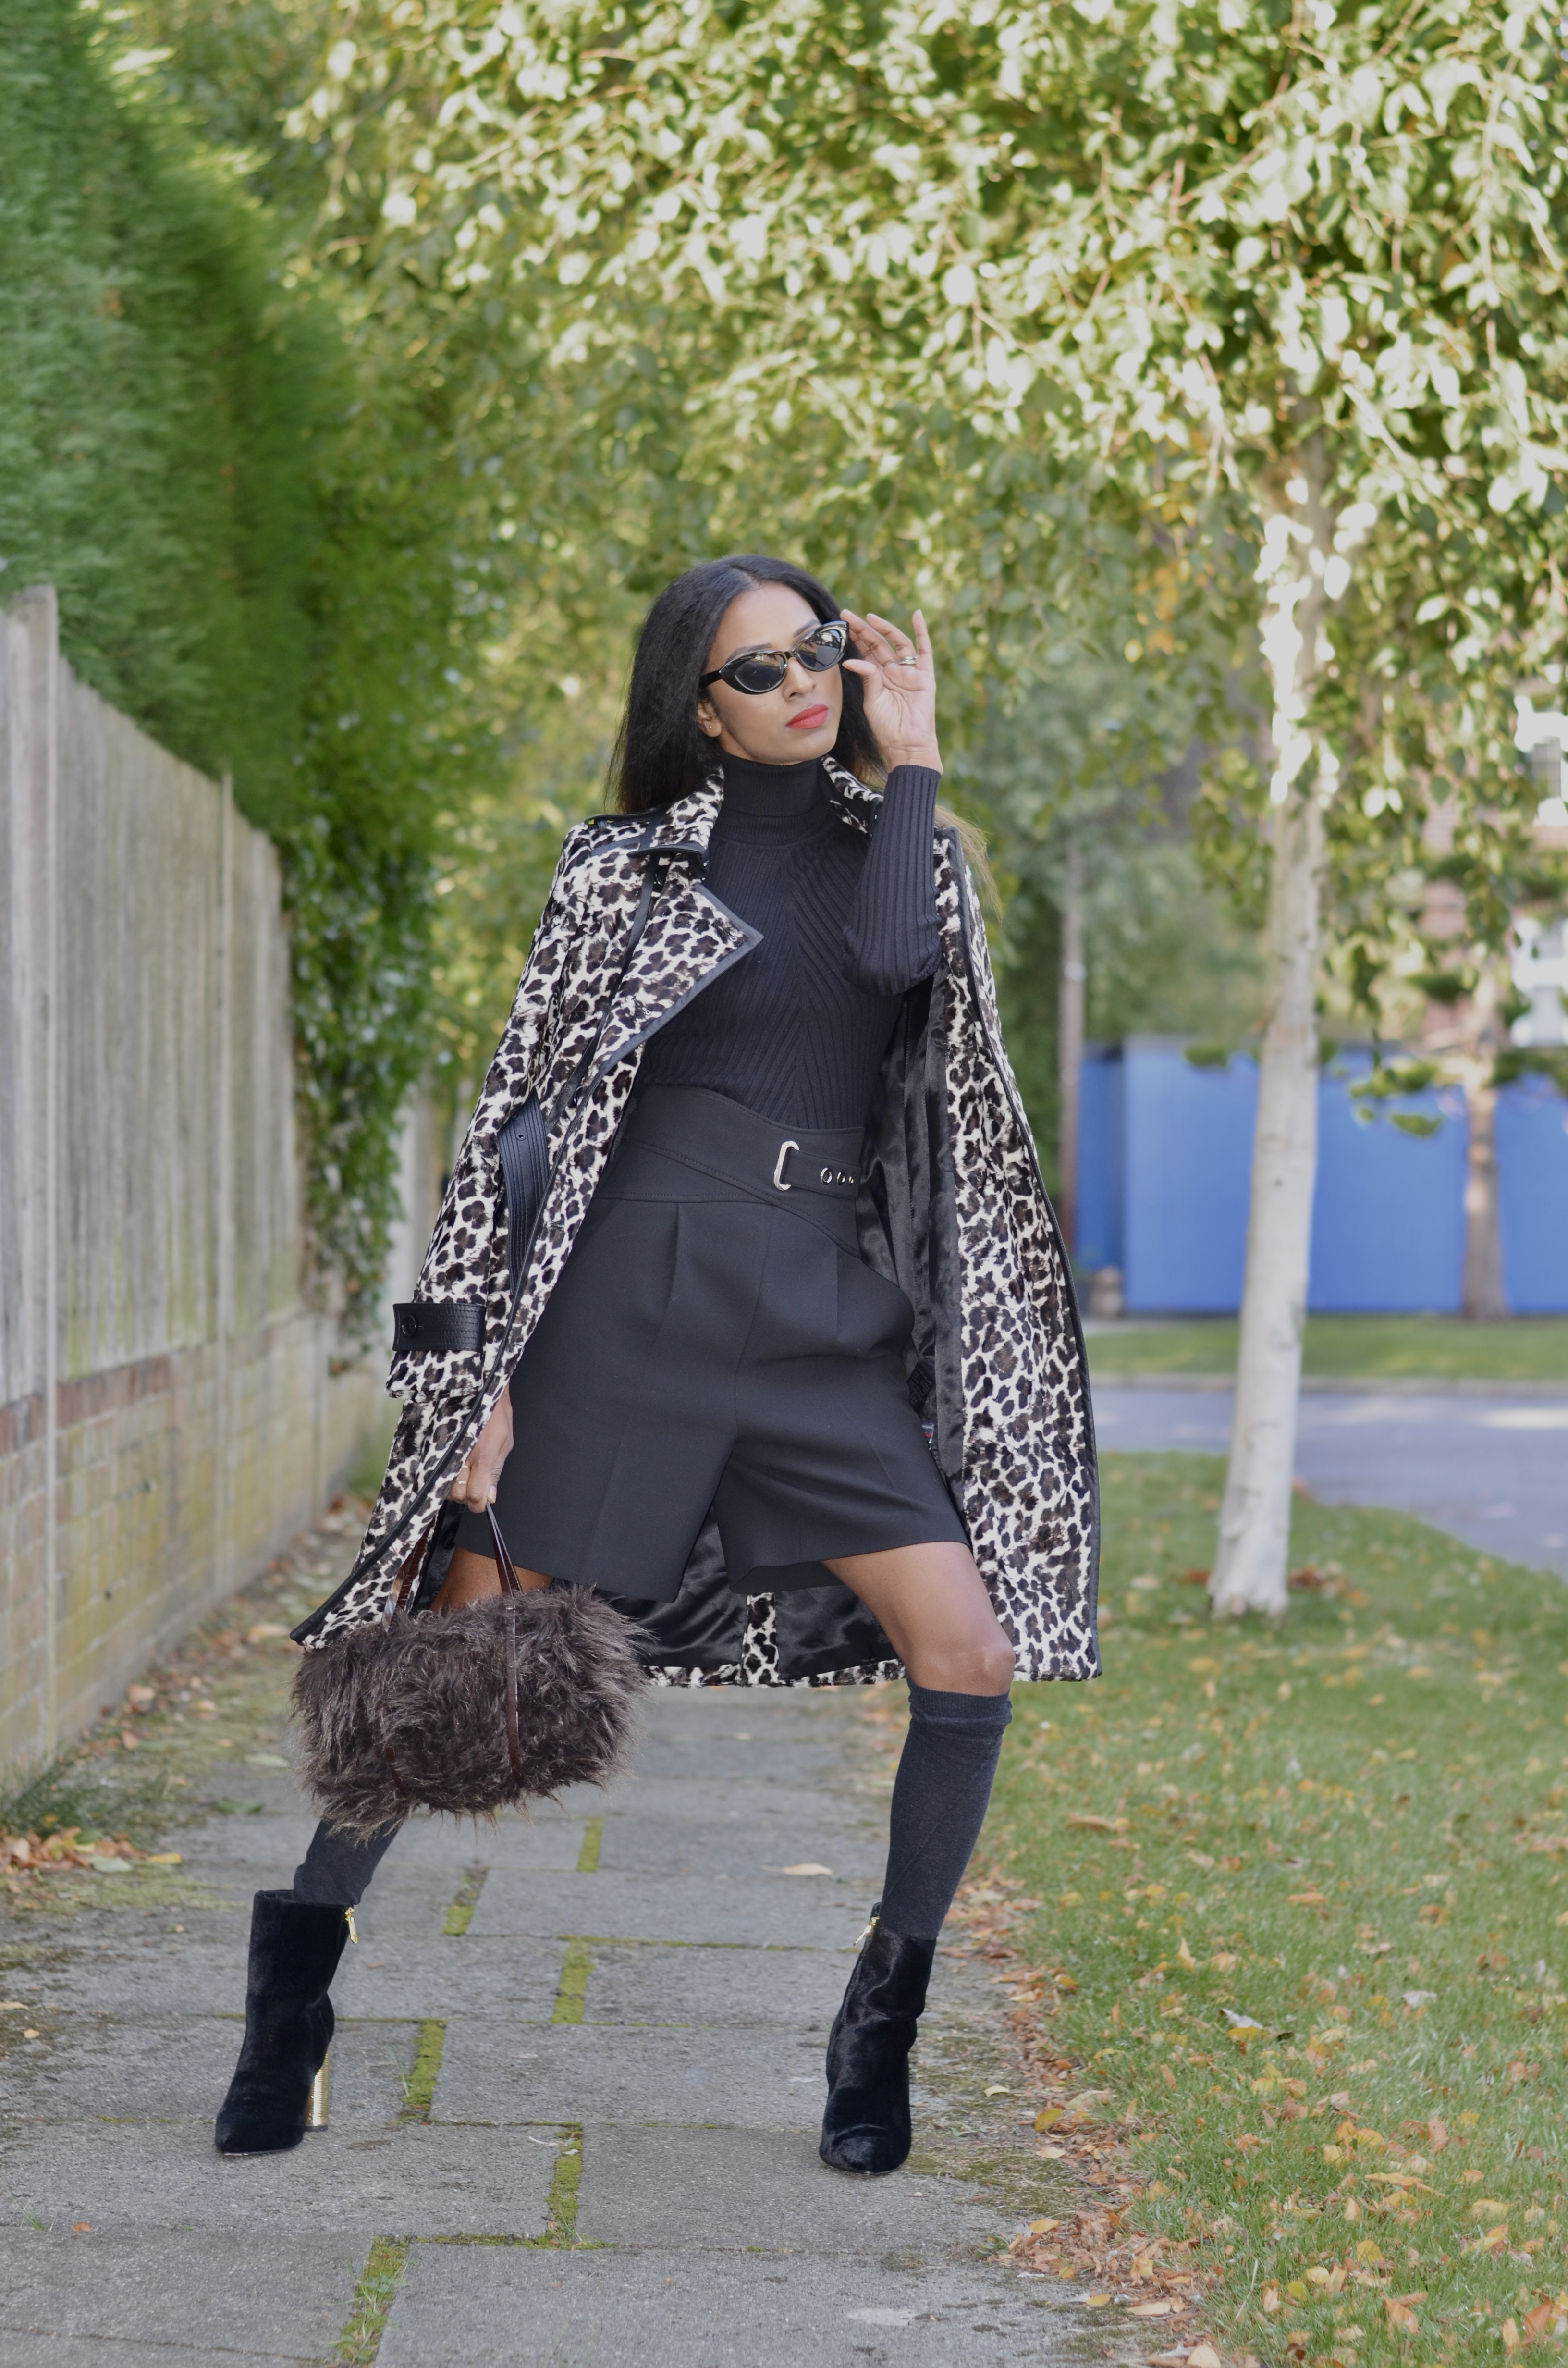 HOW TO STYLE LEOPARD PRINT FOR THE OFFICE